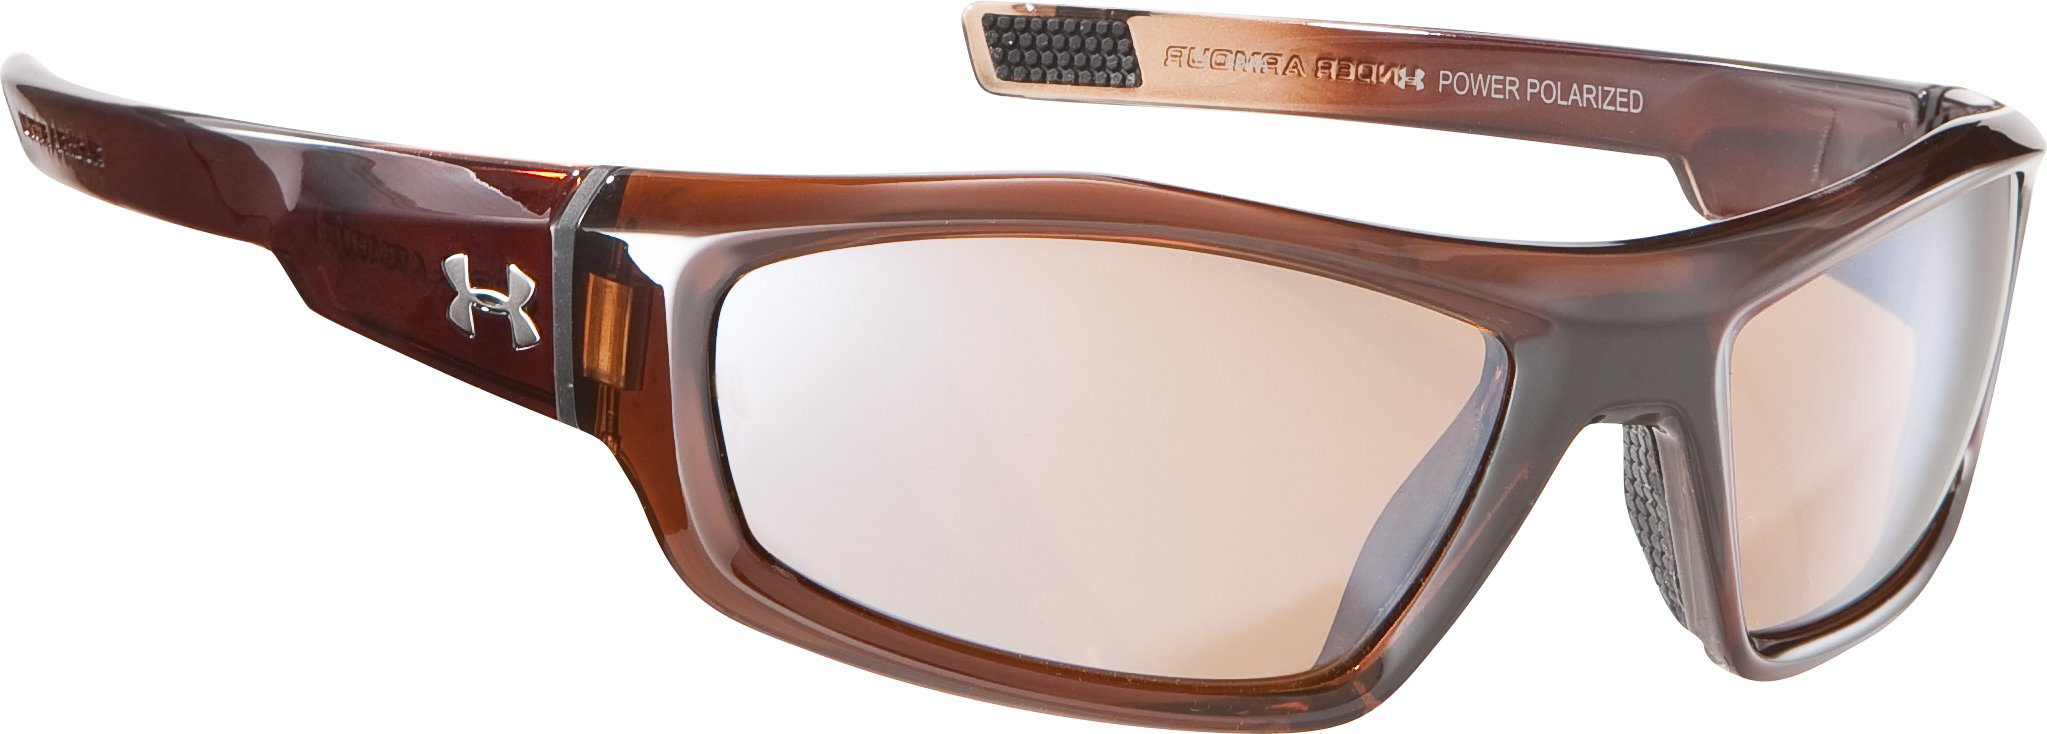 UA Power Polarized Multiflection™ Sunglasses, Shiny Crystal Cleveland Brown